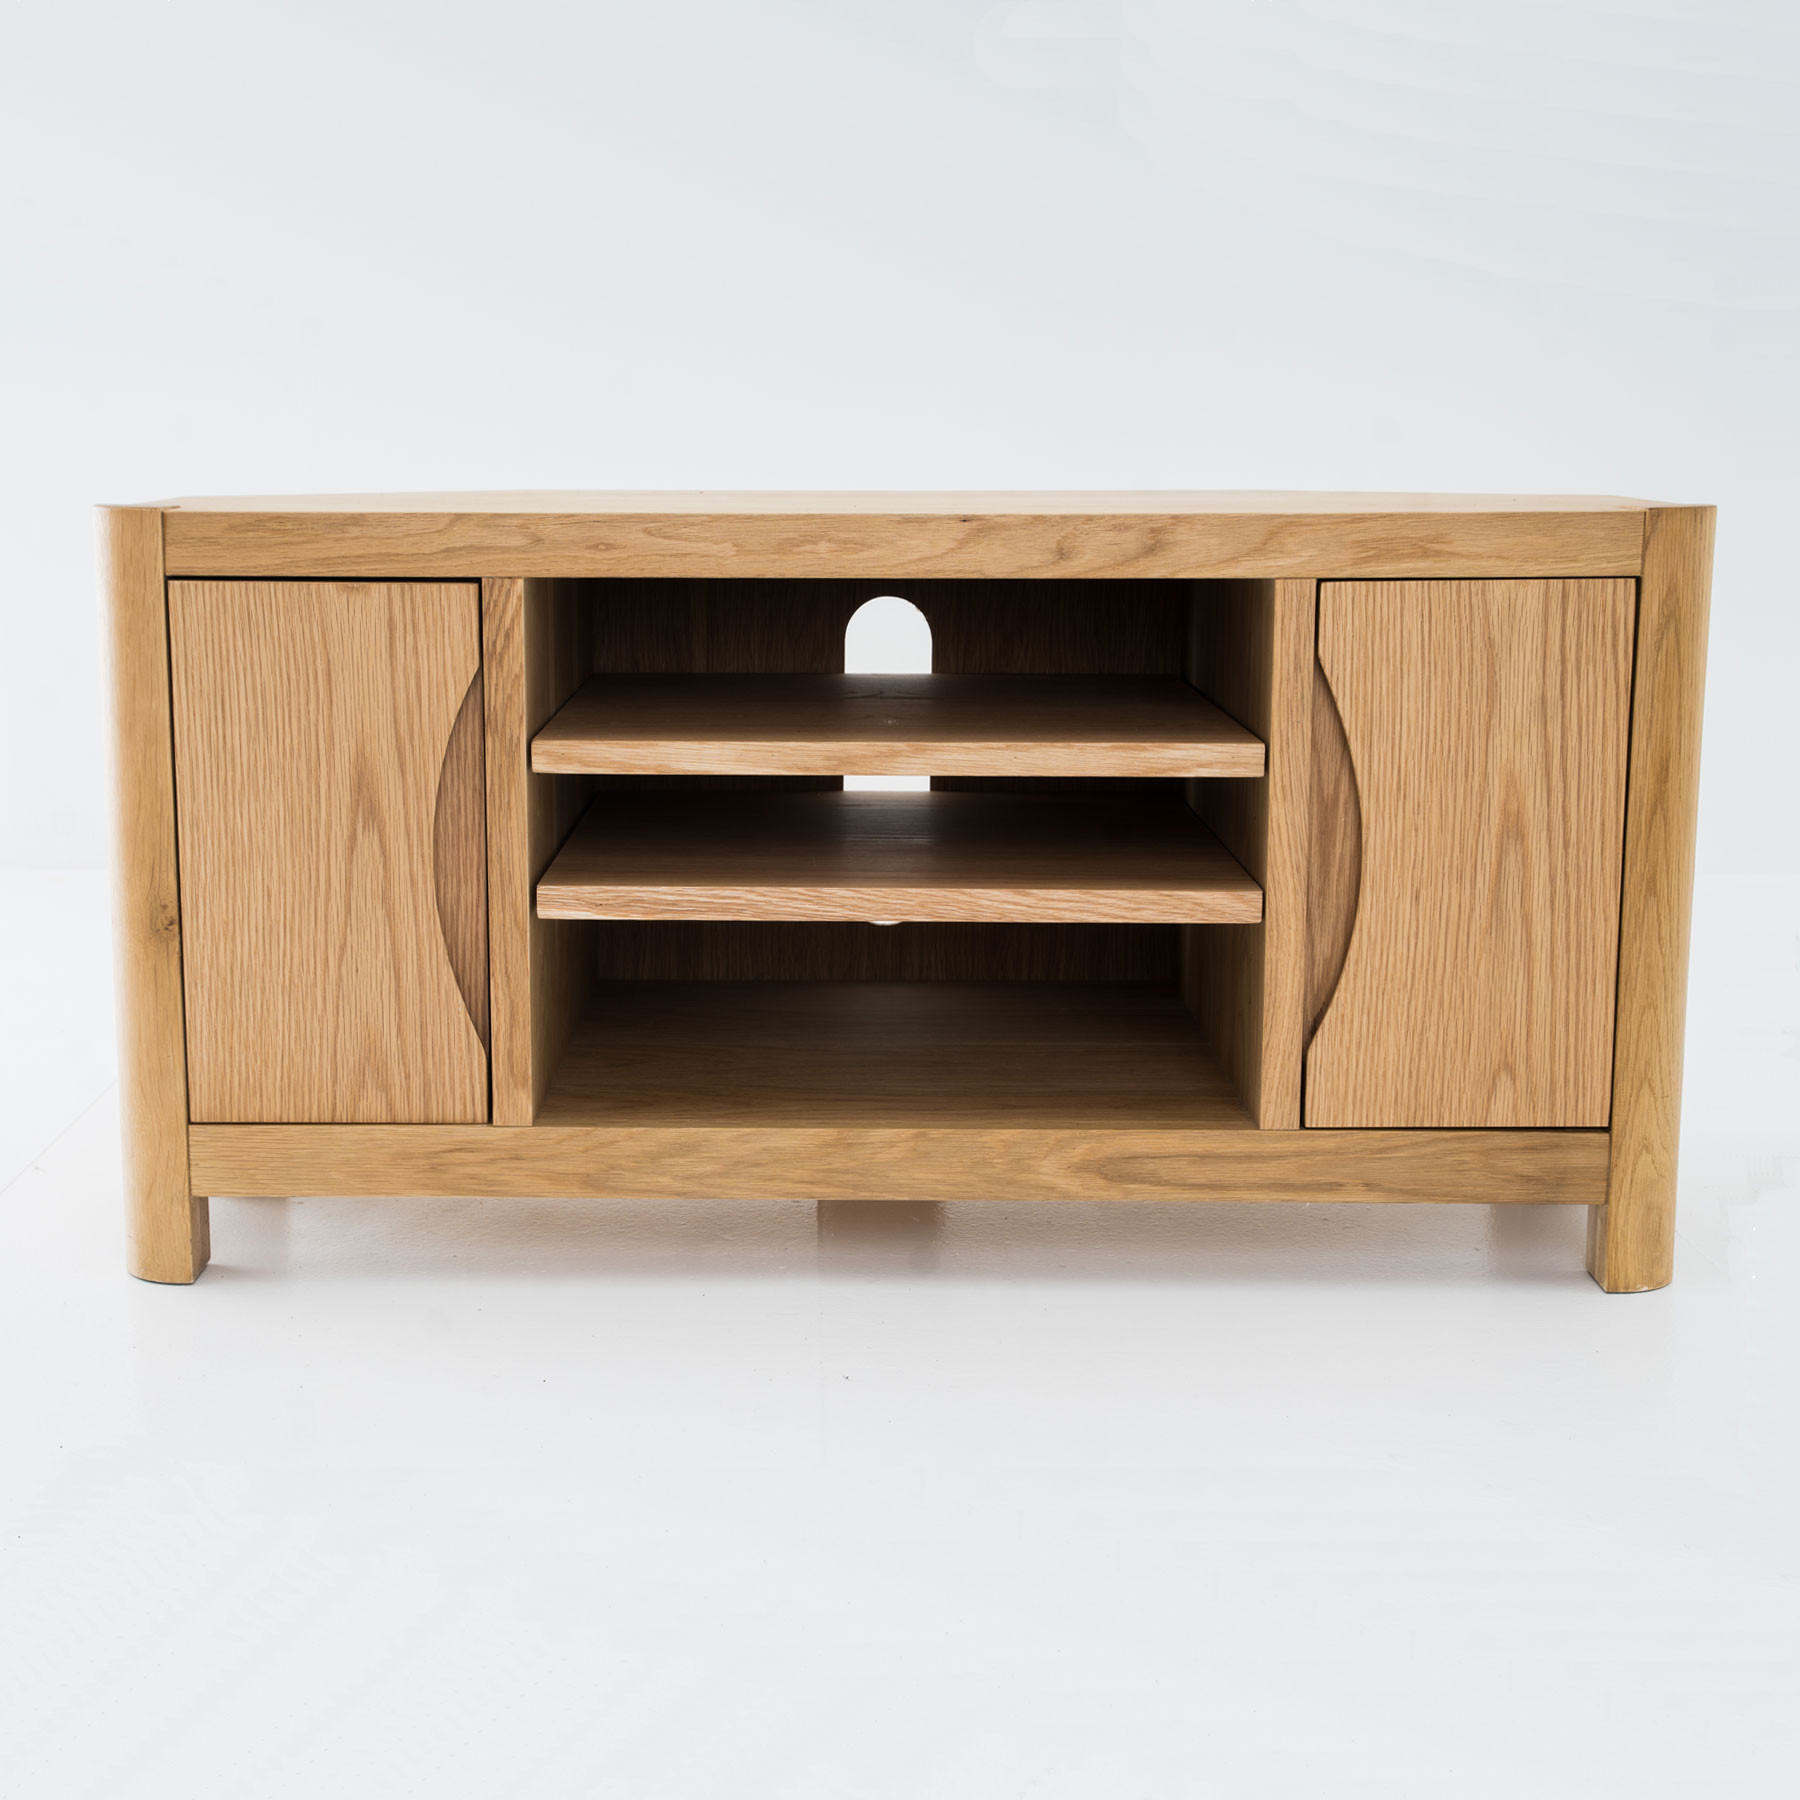 "Latest Oslo Light Oak Corner Tv Stand For Up To 44"" Tvs Intended For Oak Corner Tv Stands (View 11 of 20)"